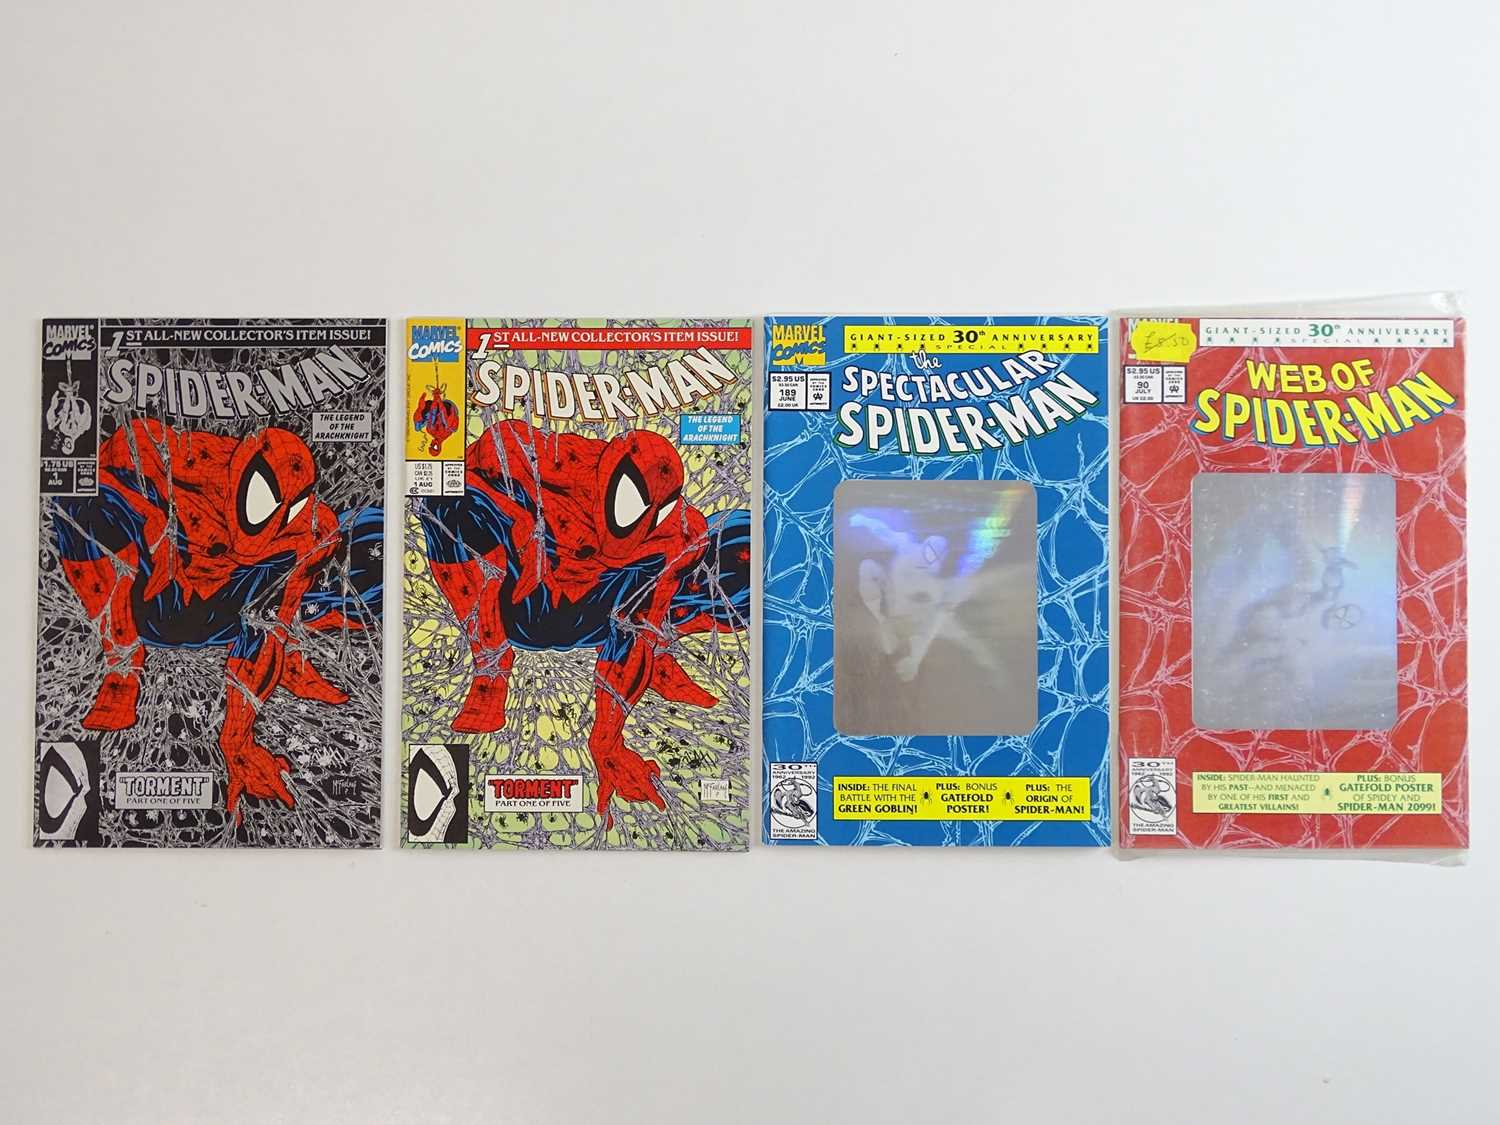 SPIDER-MAN LOT - (4 in Lot) - (MARVEL) Includes SPIDER-MAN (1990) REGULAR & SILVER #1 Issues of